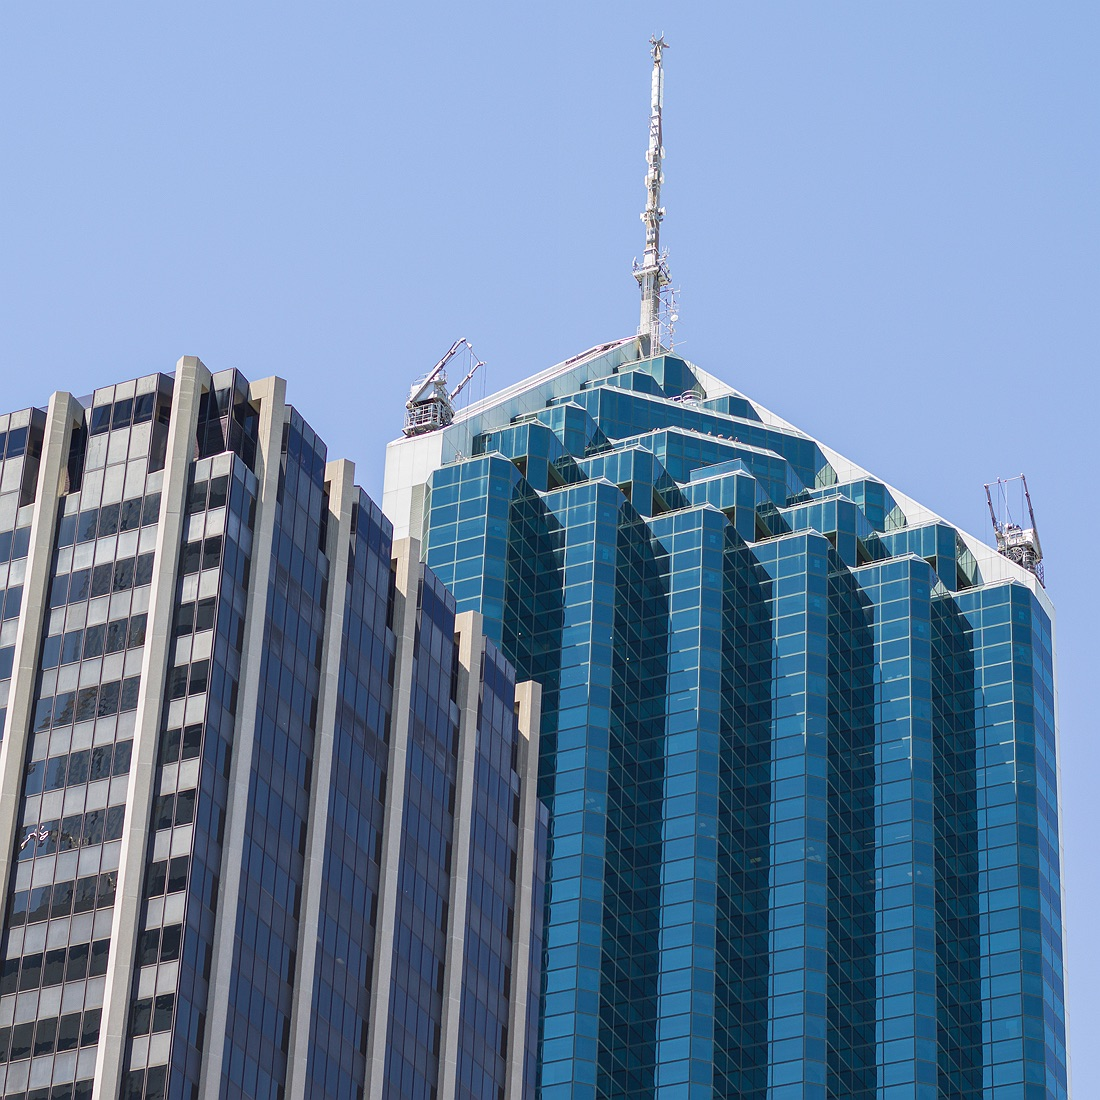 open_house_perth_skyscrapers_2014_21